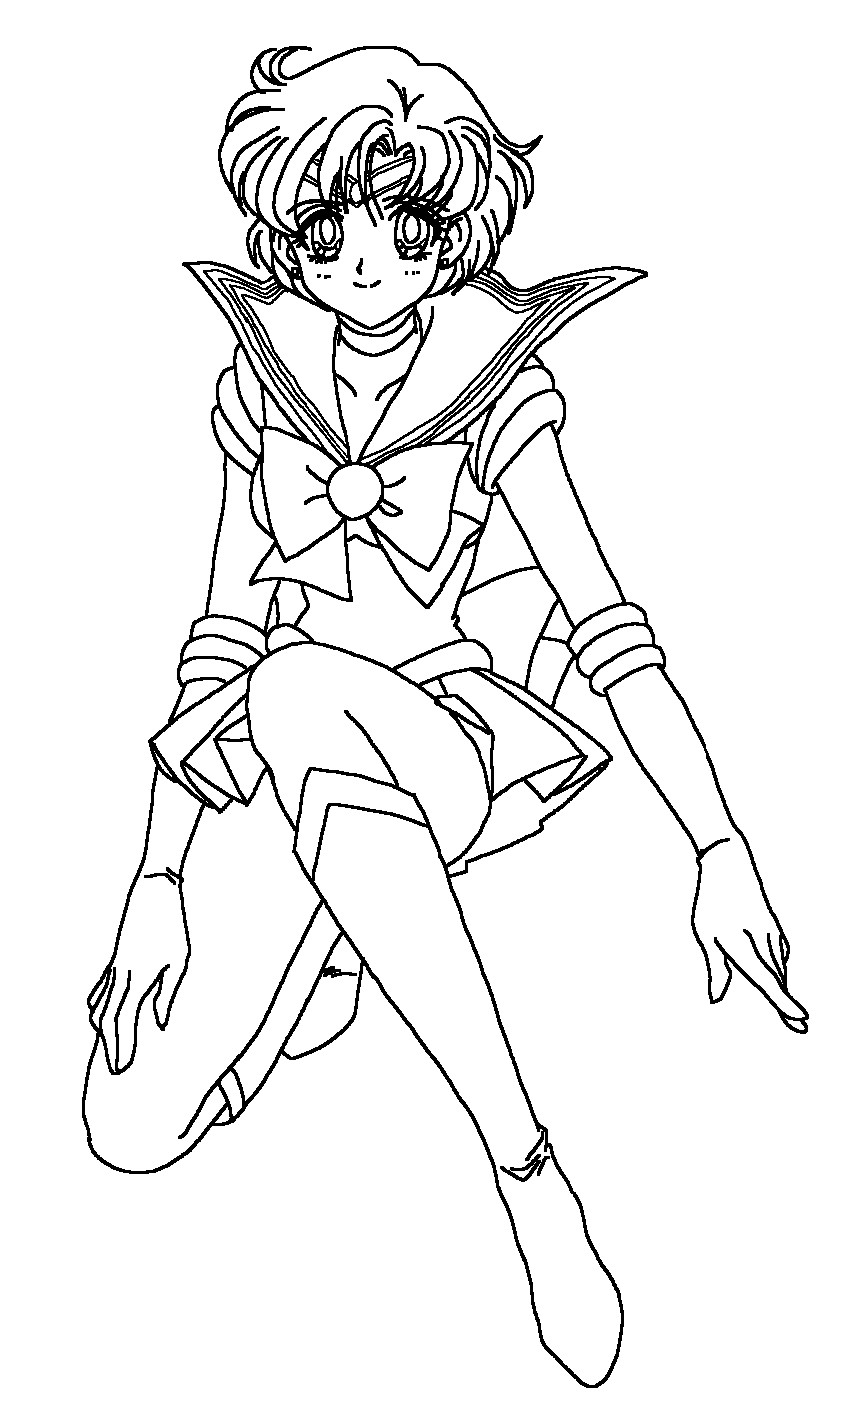 Sailor Mercury Coloring Page by Sailortwilight on DeviantArt